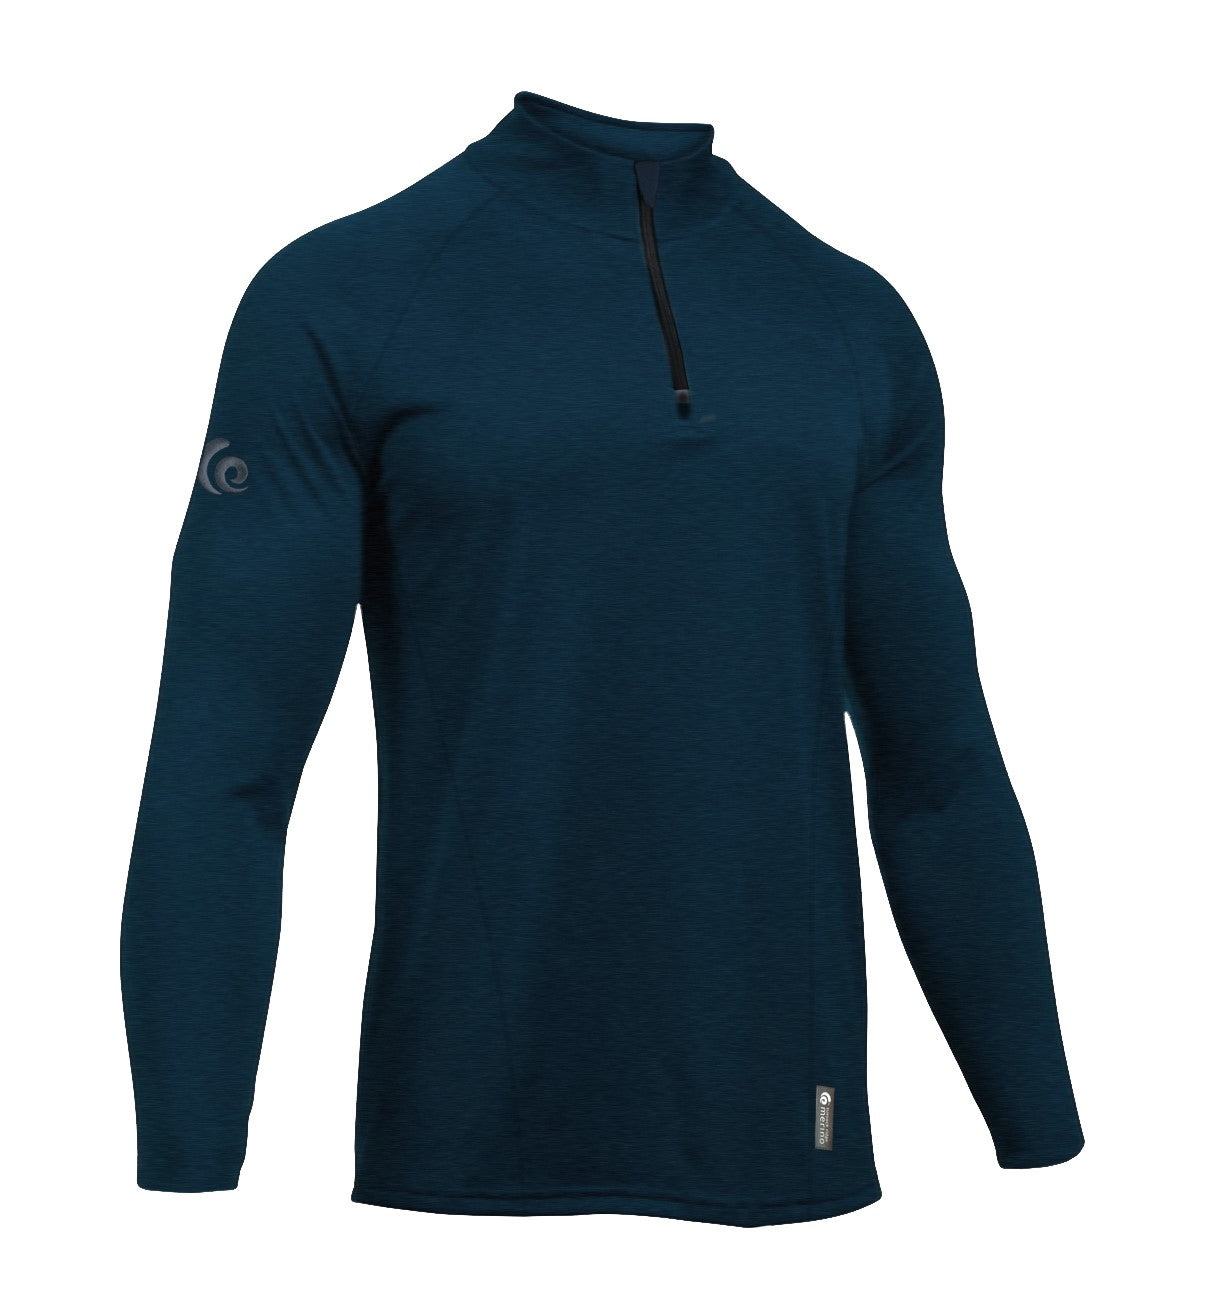 Merino Men's Navy Mid-weight Half Zip. Made in New Zealand